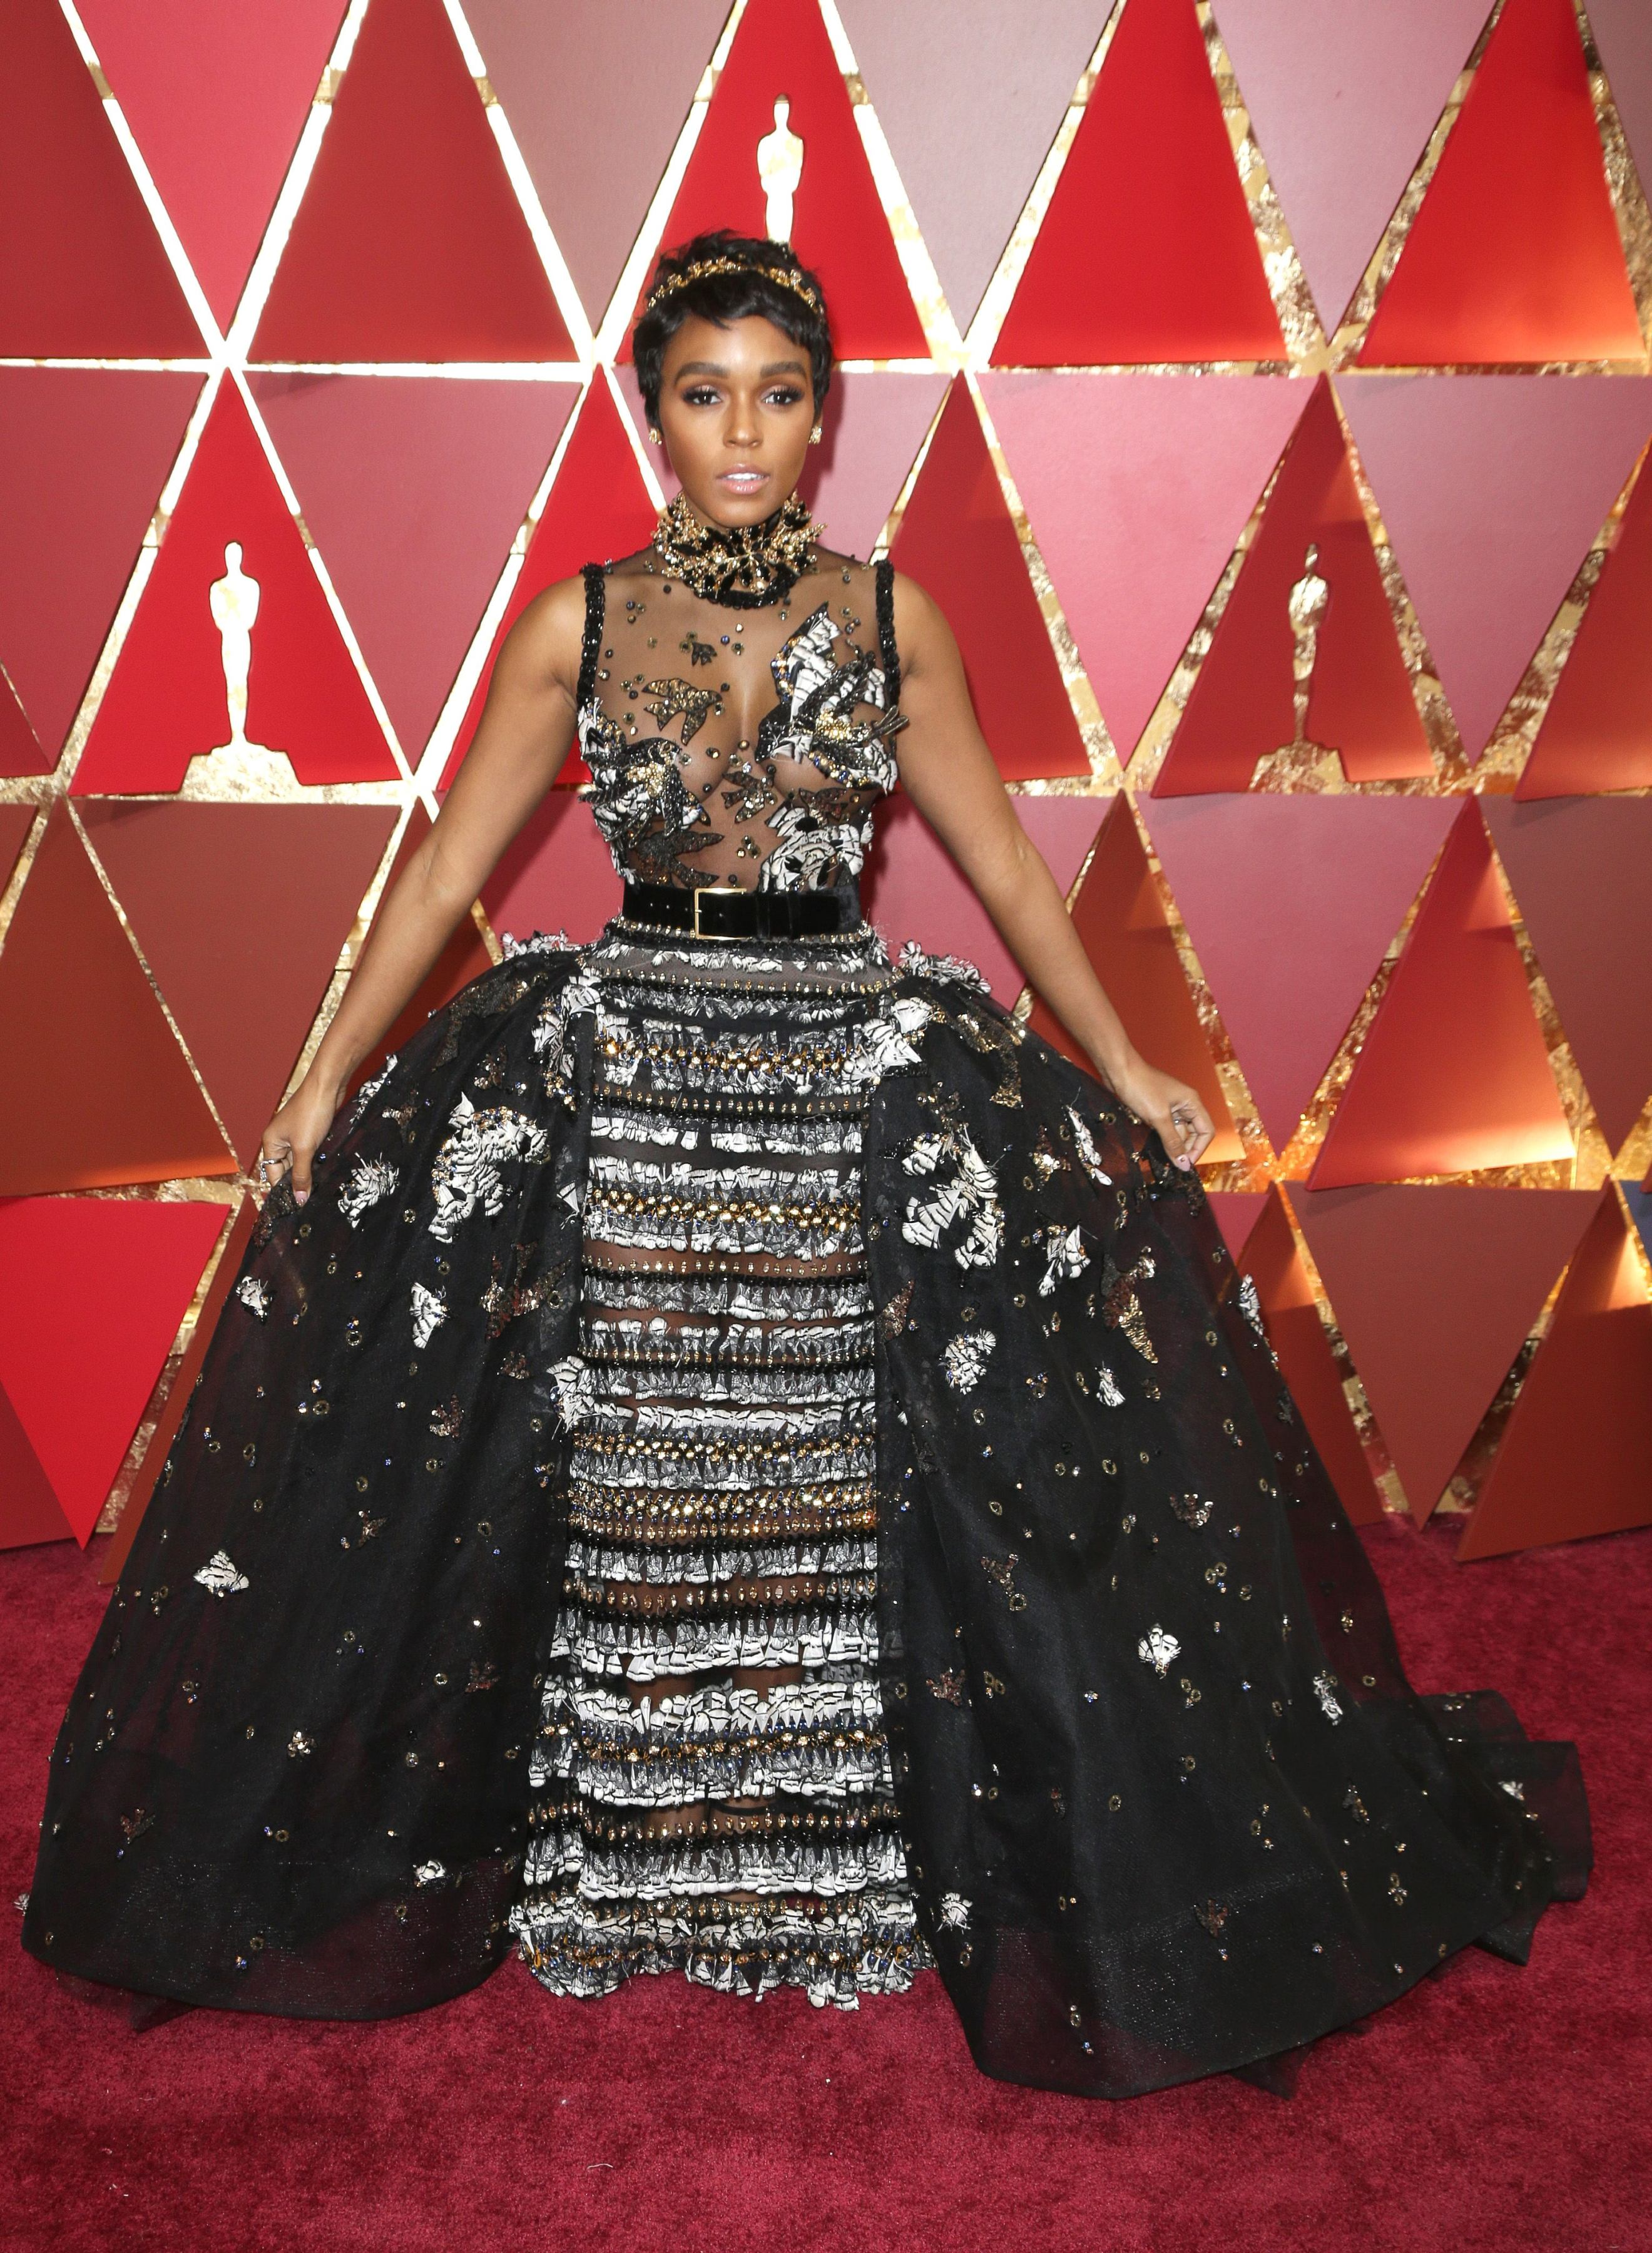 Mandatory Credit: Photo by Jim Smeal/BEI/Shutterstock (8434881kd) Janelle Monáe 89th Annual Academy Awards, Arrivals, Los Angeles, USA - 26 Feb 2017